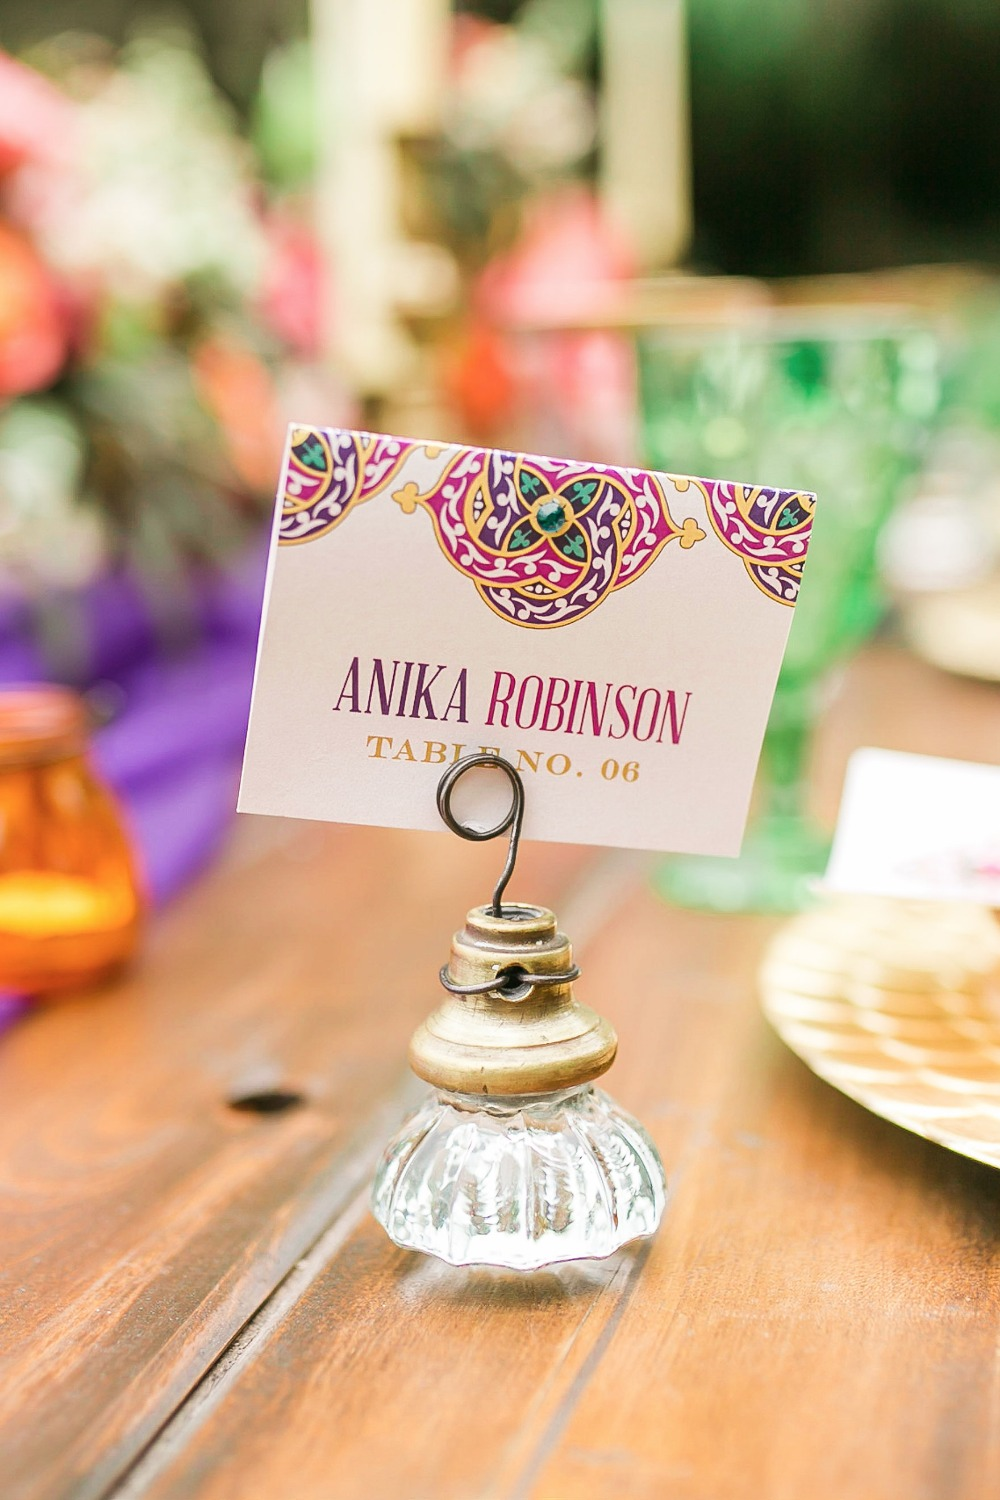 Cute place card and door knob holder